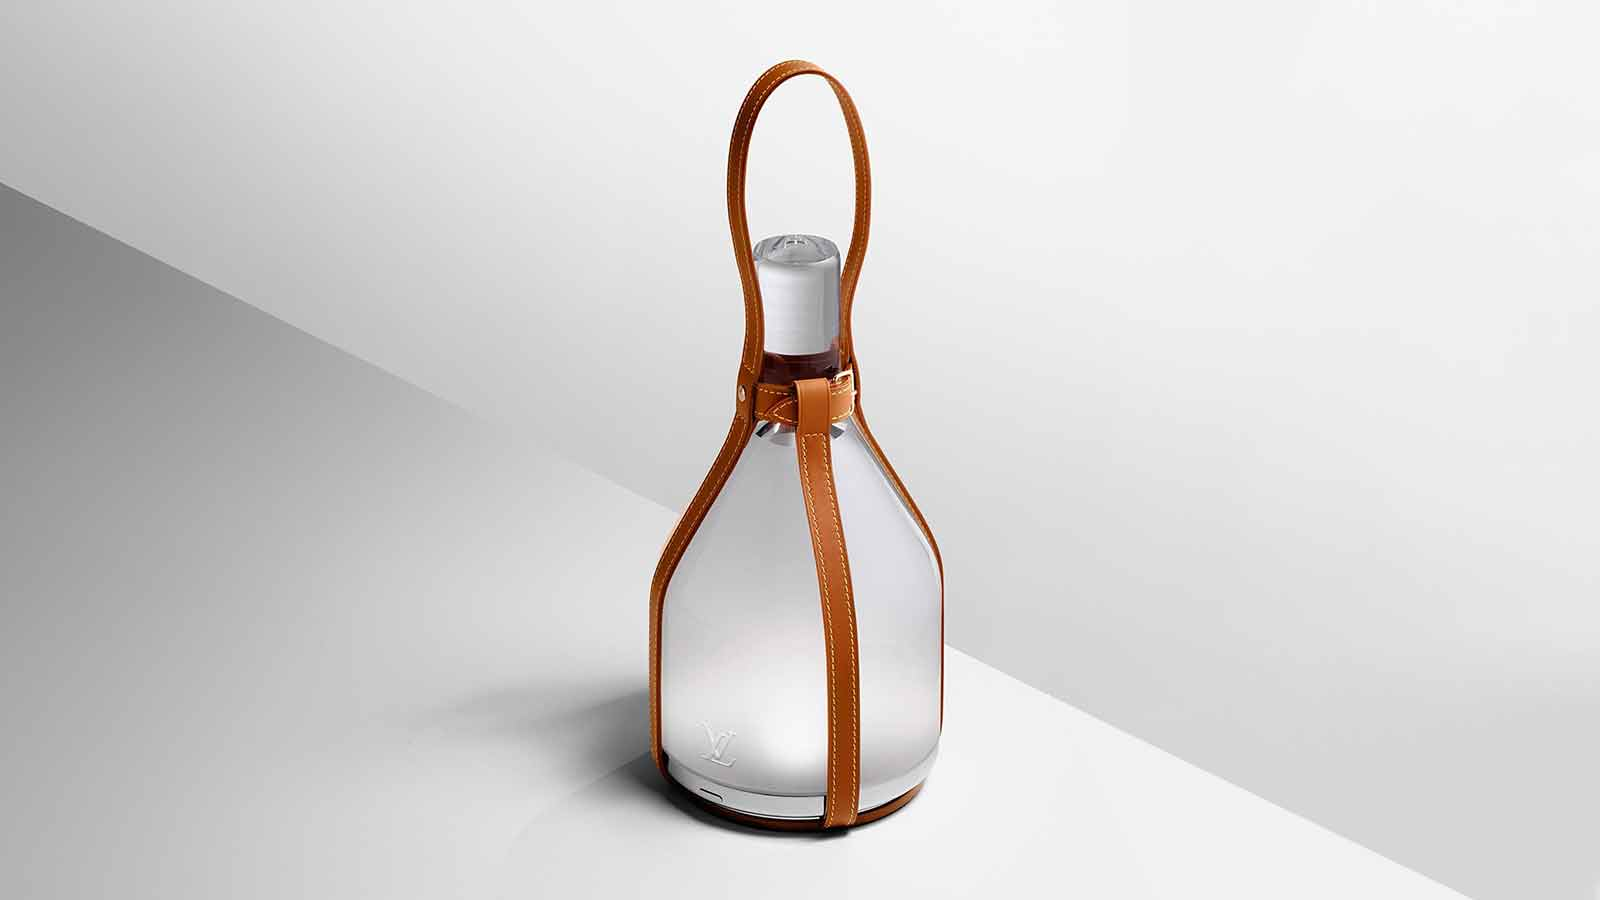 Louis Vuitton Exotic Strap for Bell Lamp by Edward Barber & Jay Osgerby